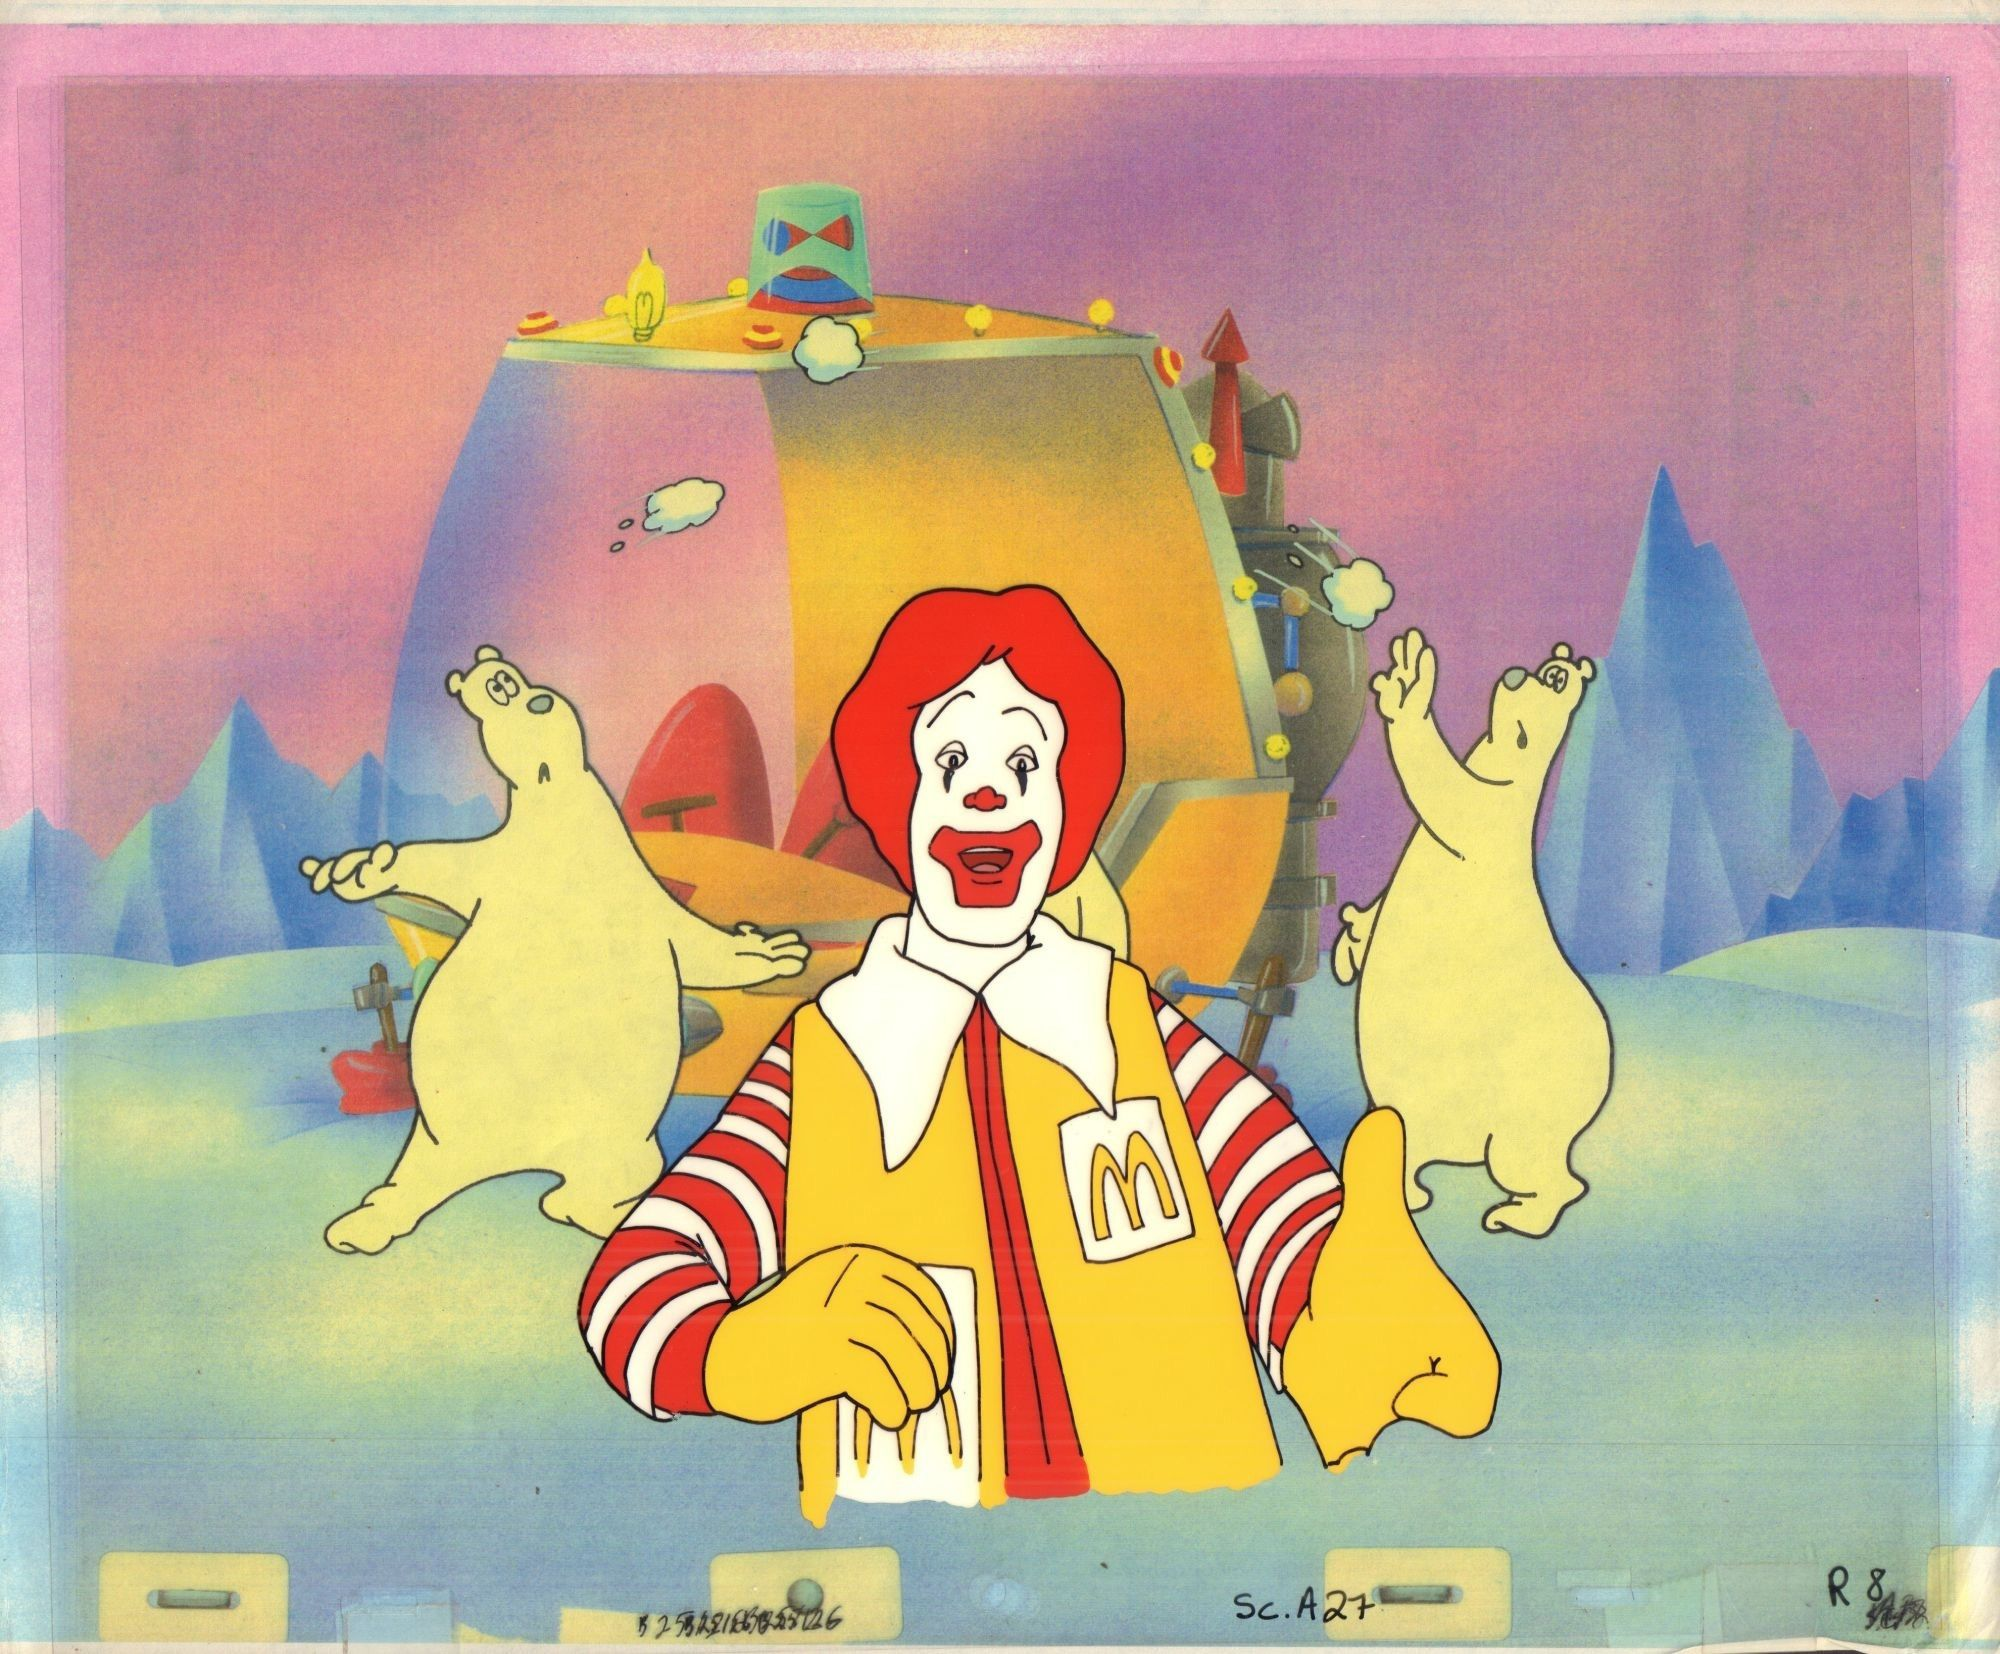 The Wacky Adventures Of Ronald McDonald, A27